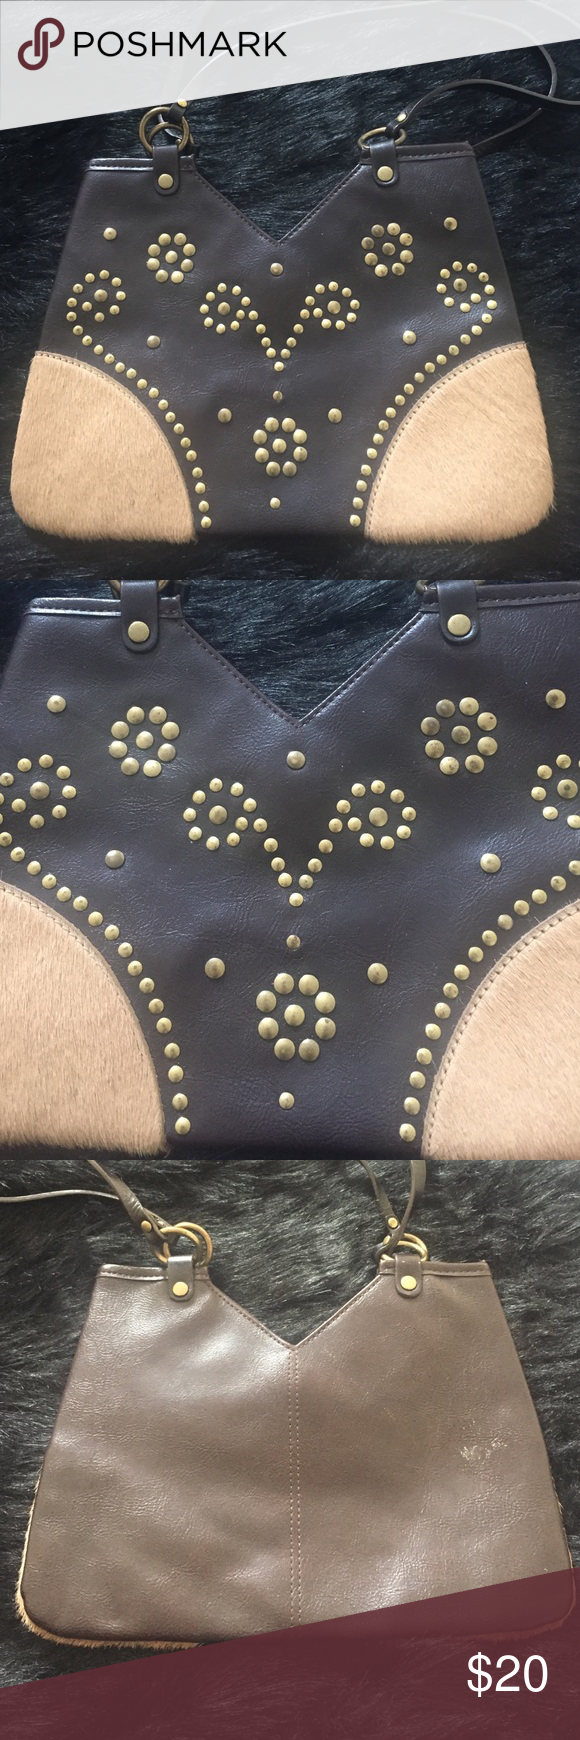 Gorgeous leather handbag w/ gold studded detail Gorgeous leather handbag w/ gold studded detail Express Bags Mini Bags